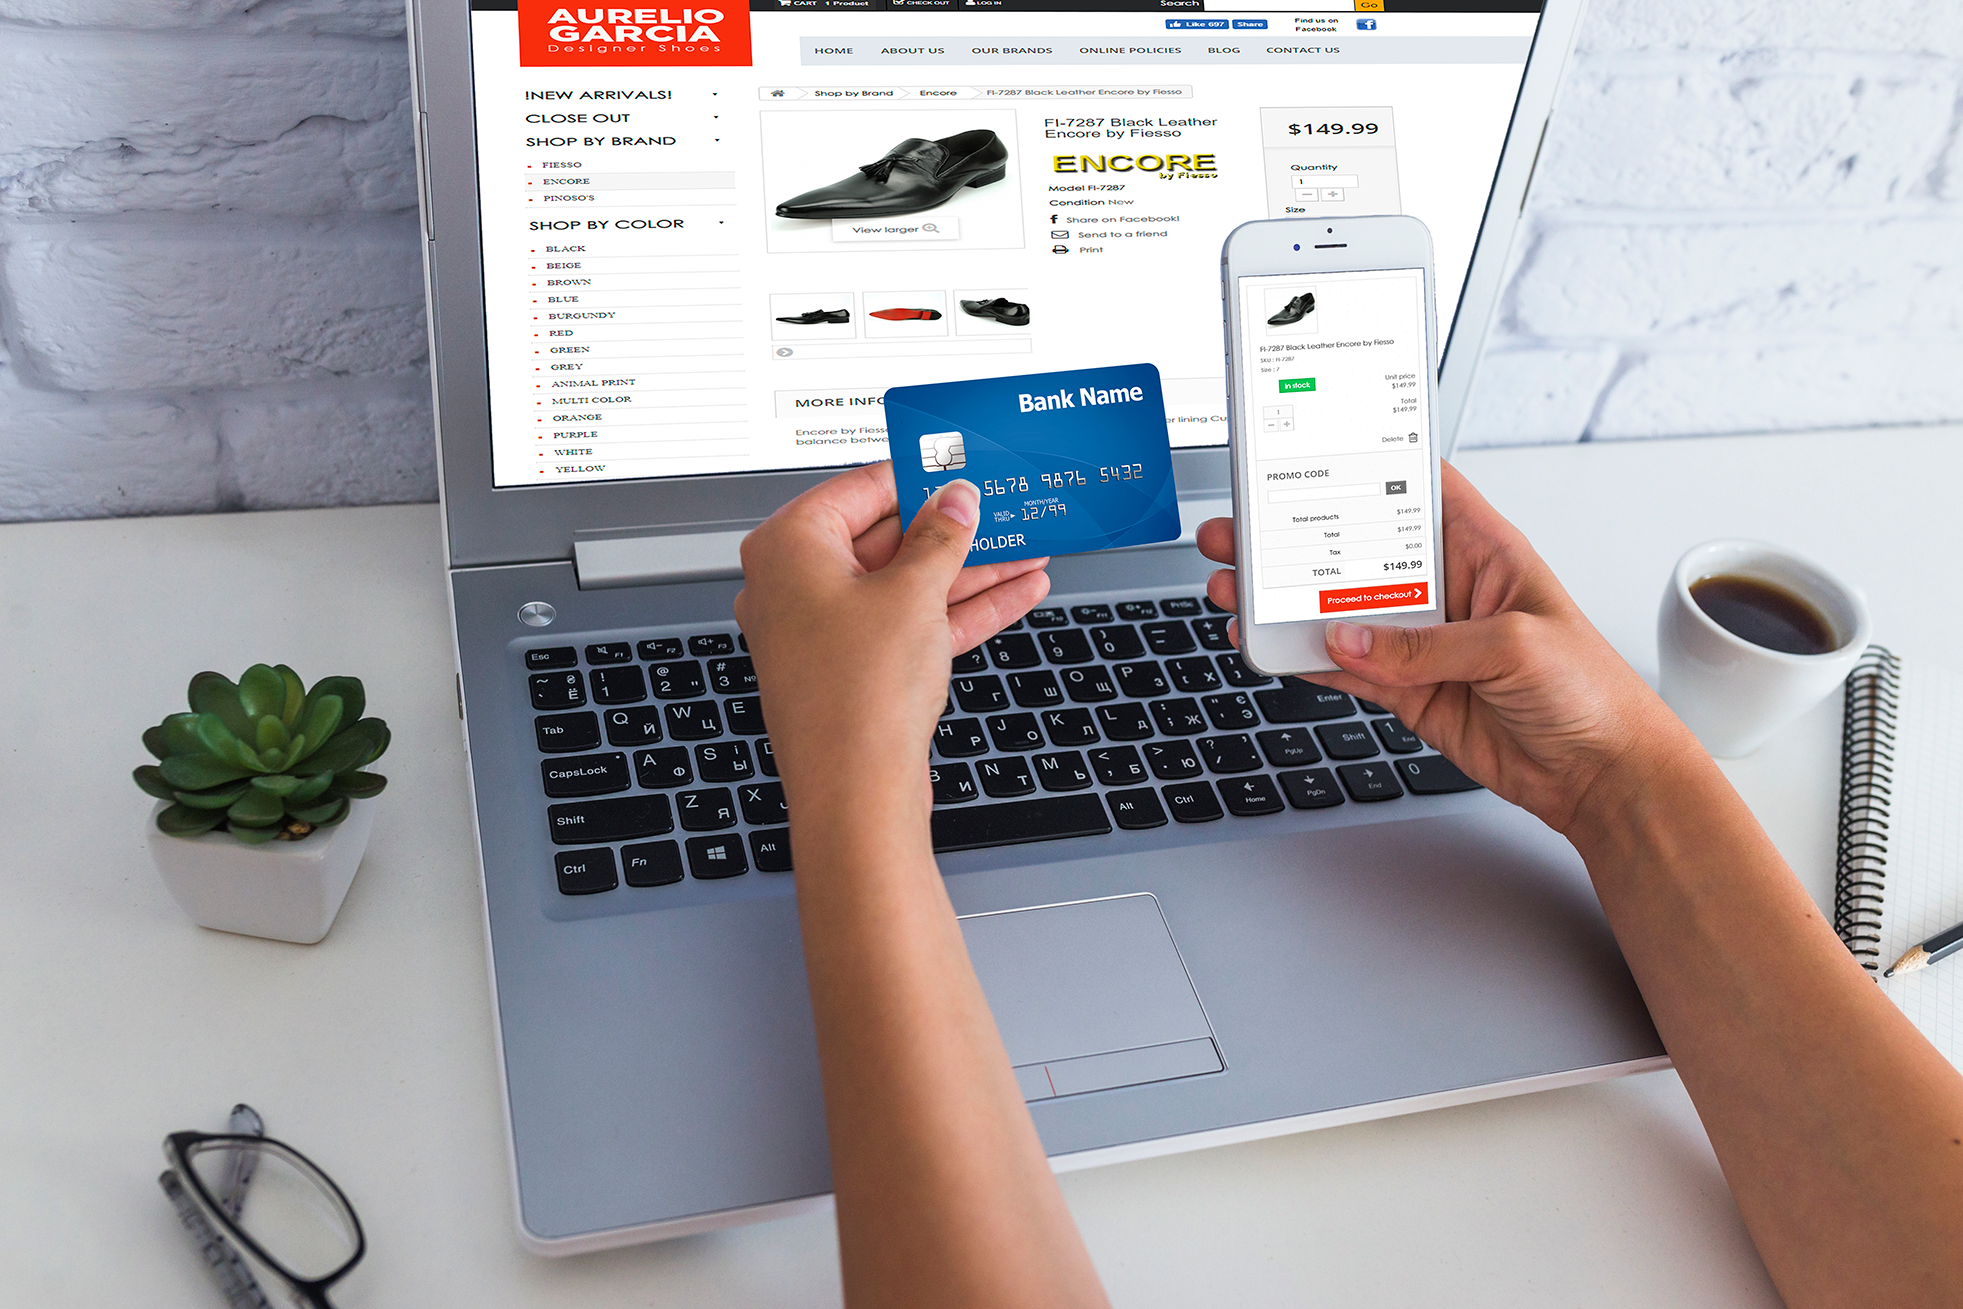 4283a3863b Our team of online stores experts has built dozens of Miami e-Commerce  websites and knows exactly how to help you through every step to ensure a  hassle-free ...